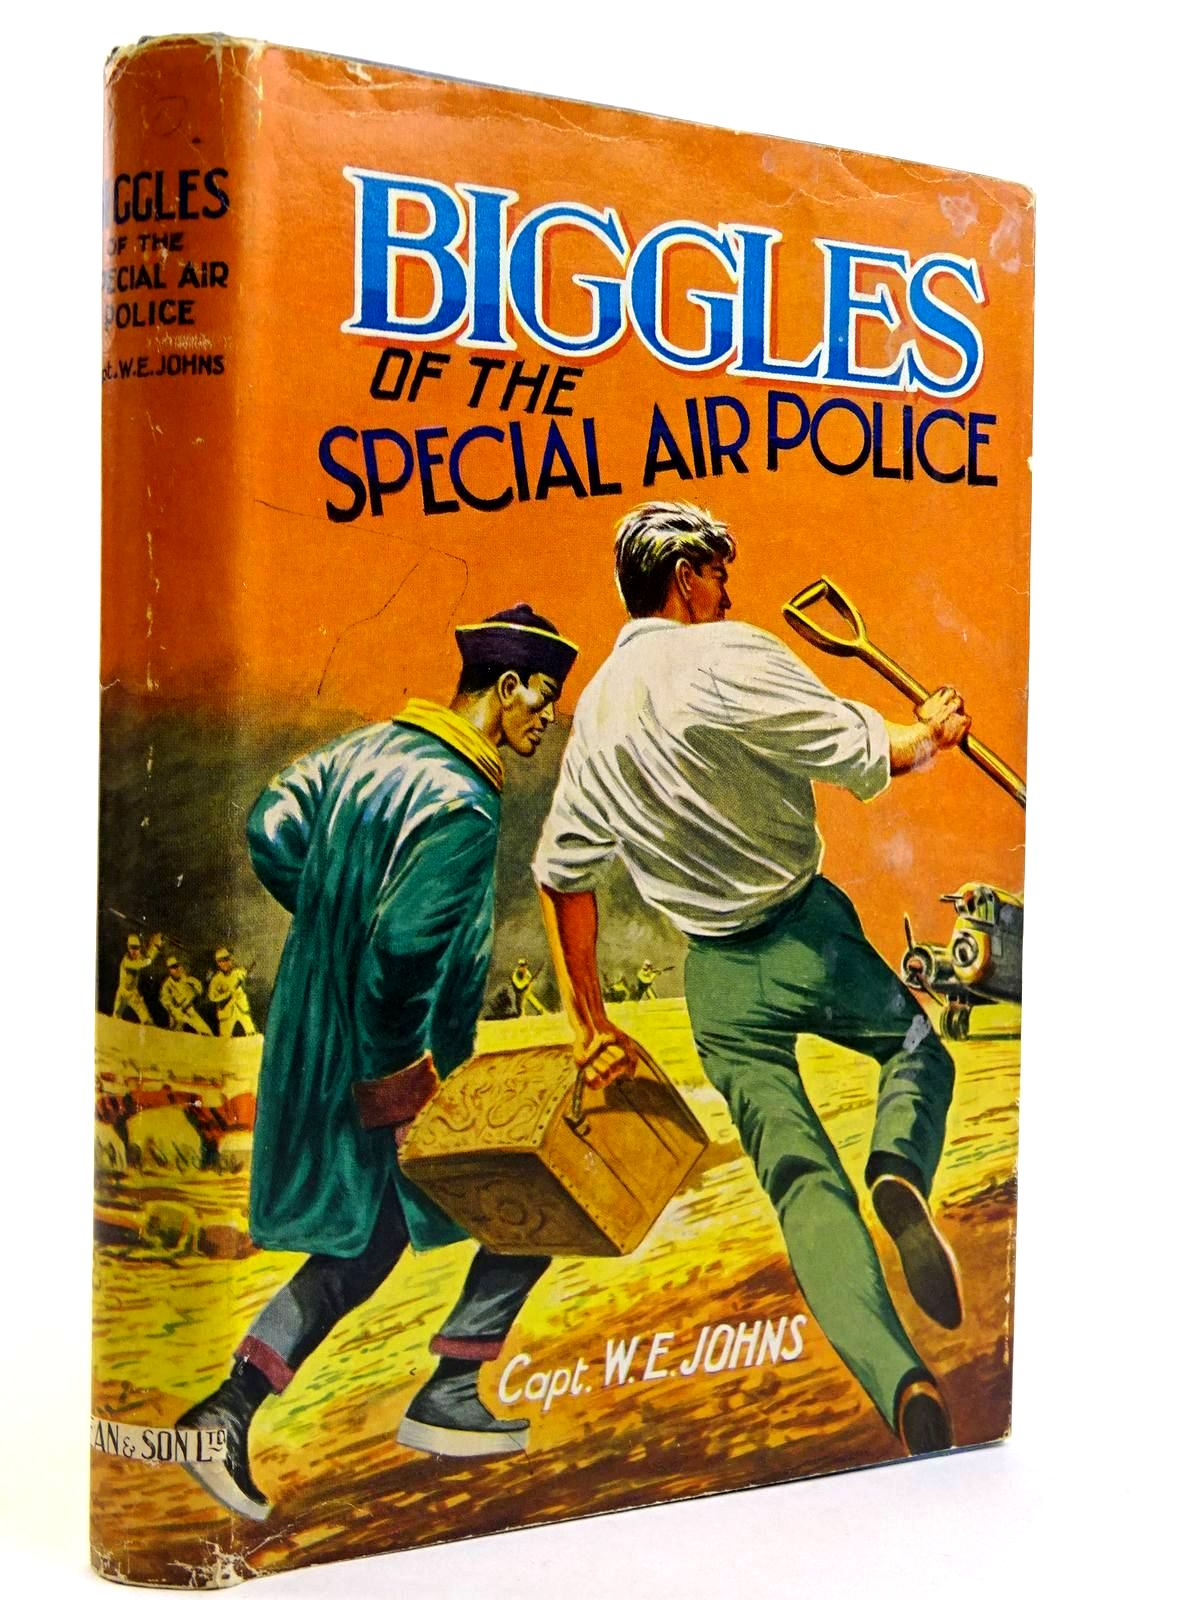 Photo of BIGGLES OF THE SPECIAL AIR POLICE written by Johns, W.E. published by Dean & Son Ltd. (STOCK CODE: 2131735)  for sale by Stella & Rose's Books